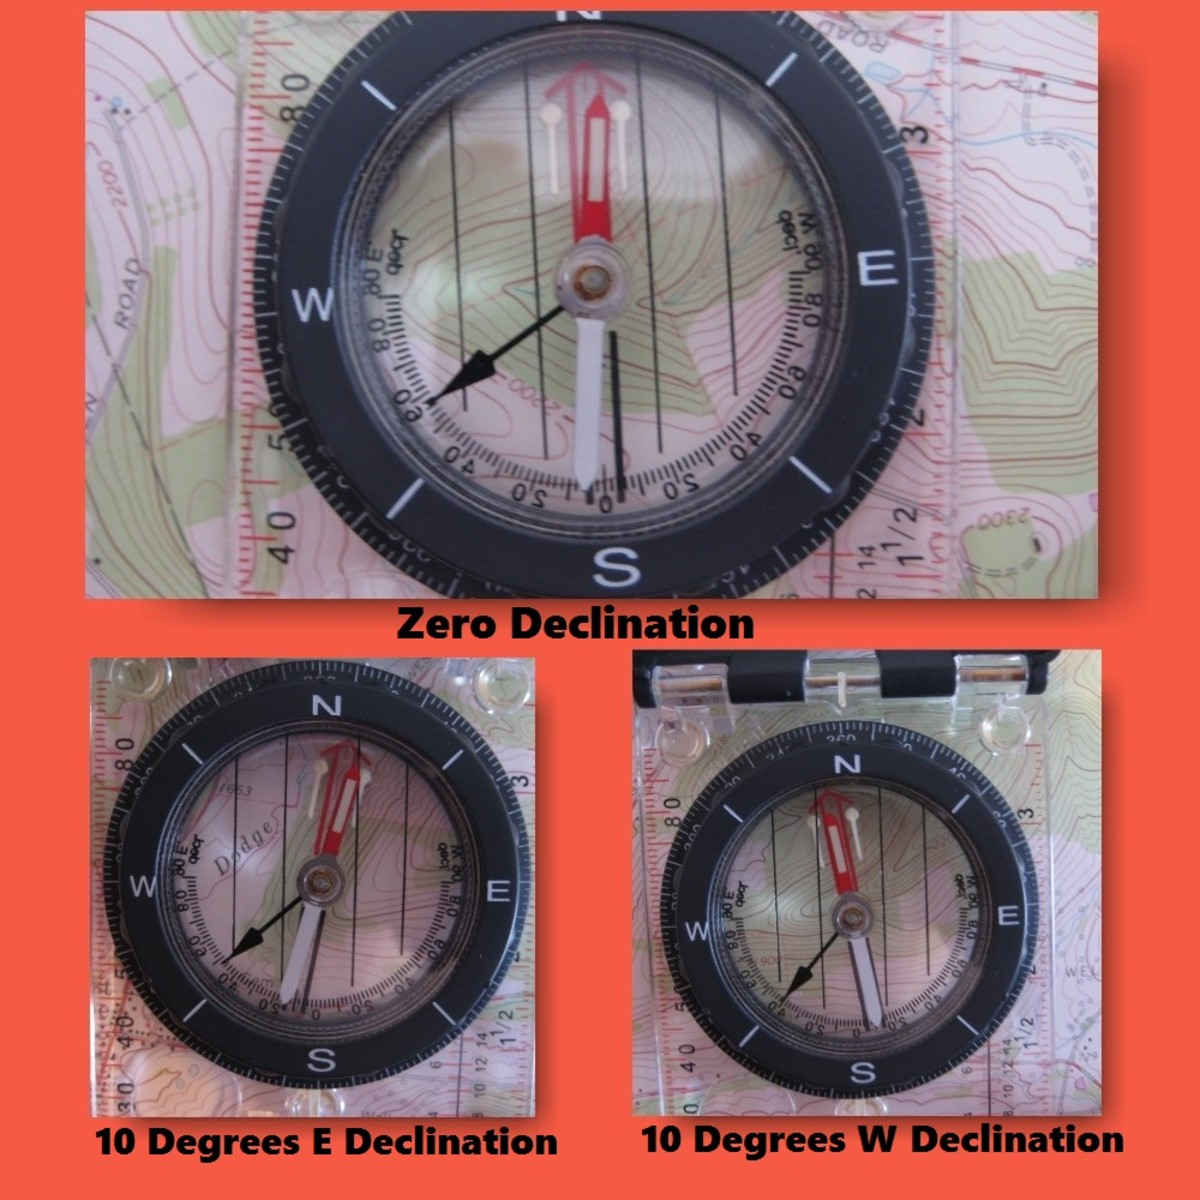 A Silva Ranger compass adjusted for declination.